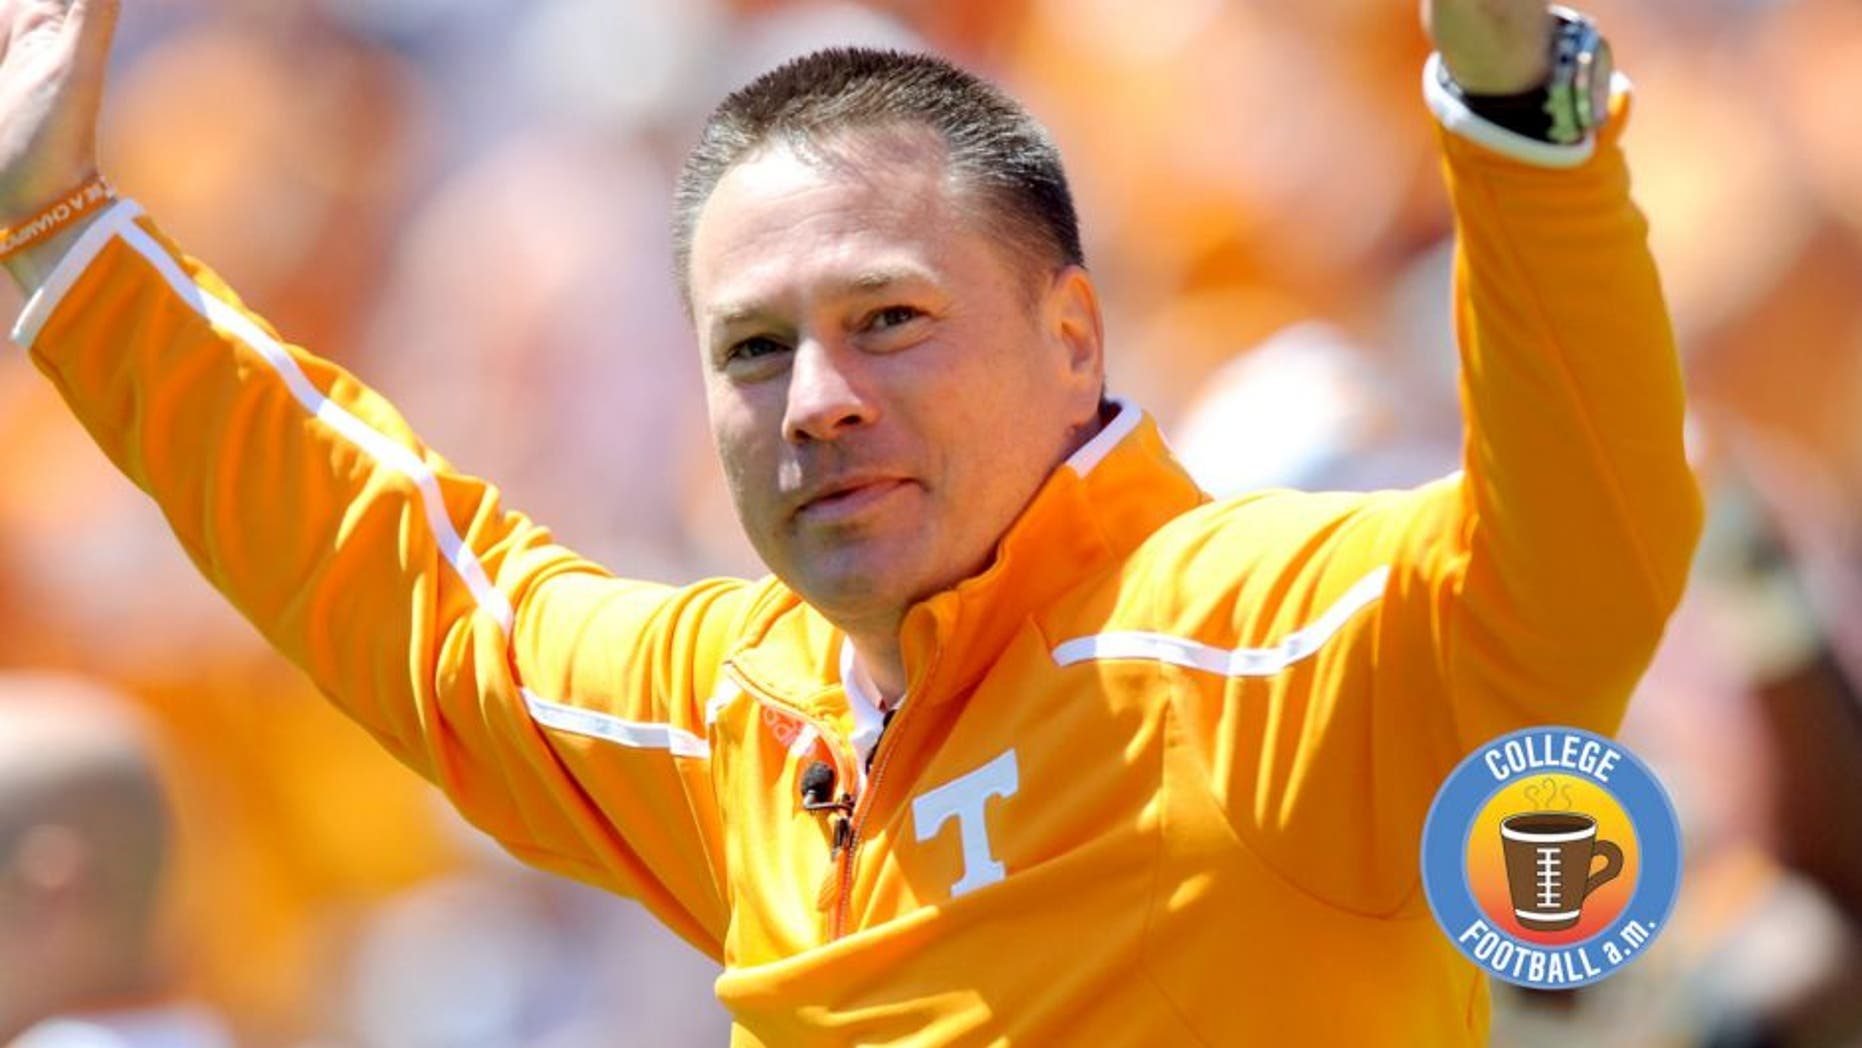 Apr 20, 2013; Knoxville, TN, USA; Tennessee Volunteers head coach Butch Jones during the first half of the spring Orange and White game at Neyland Stadium. Mandatory Credit: Randy Sartin-USA TODAY Sports